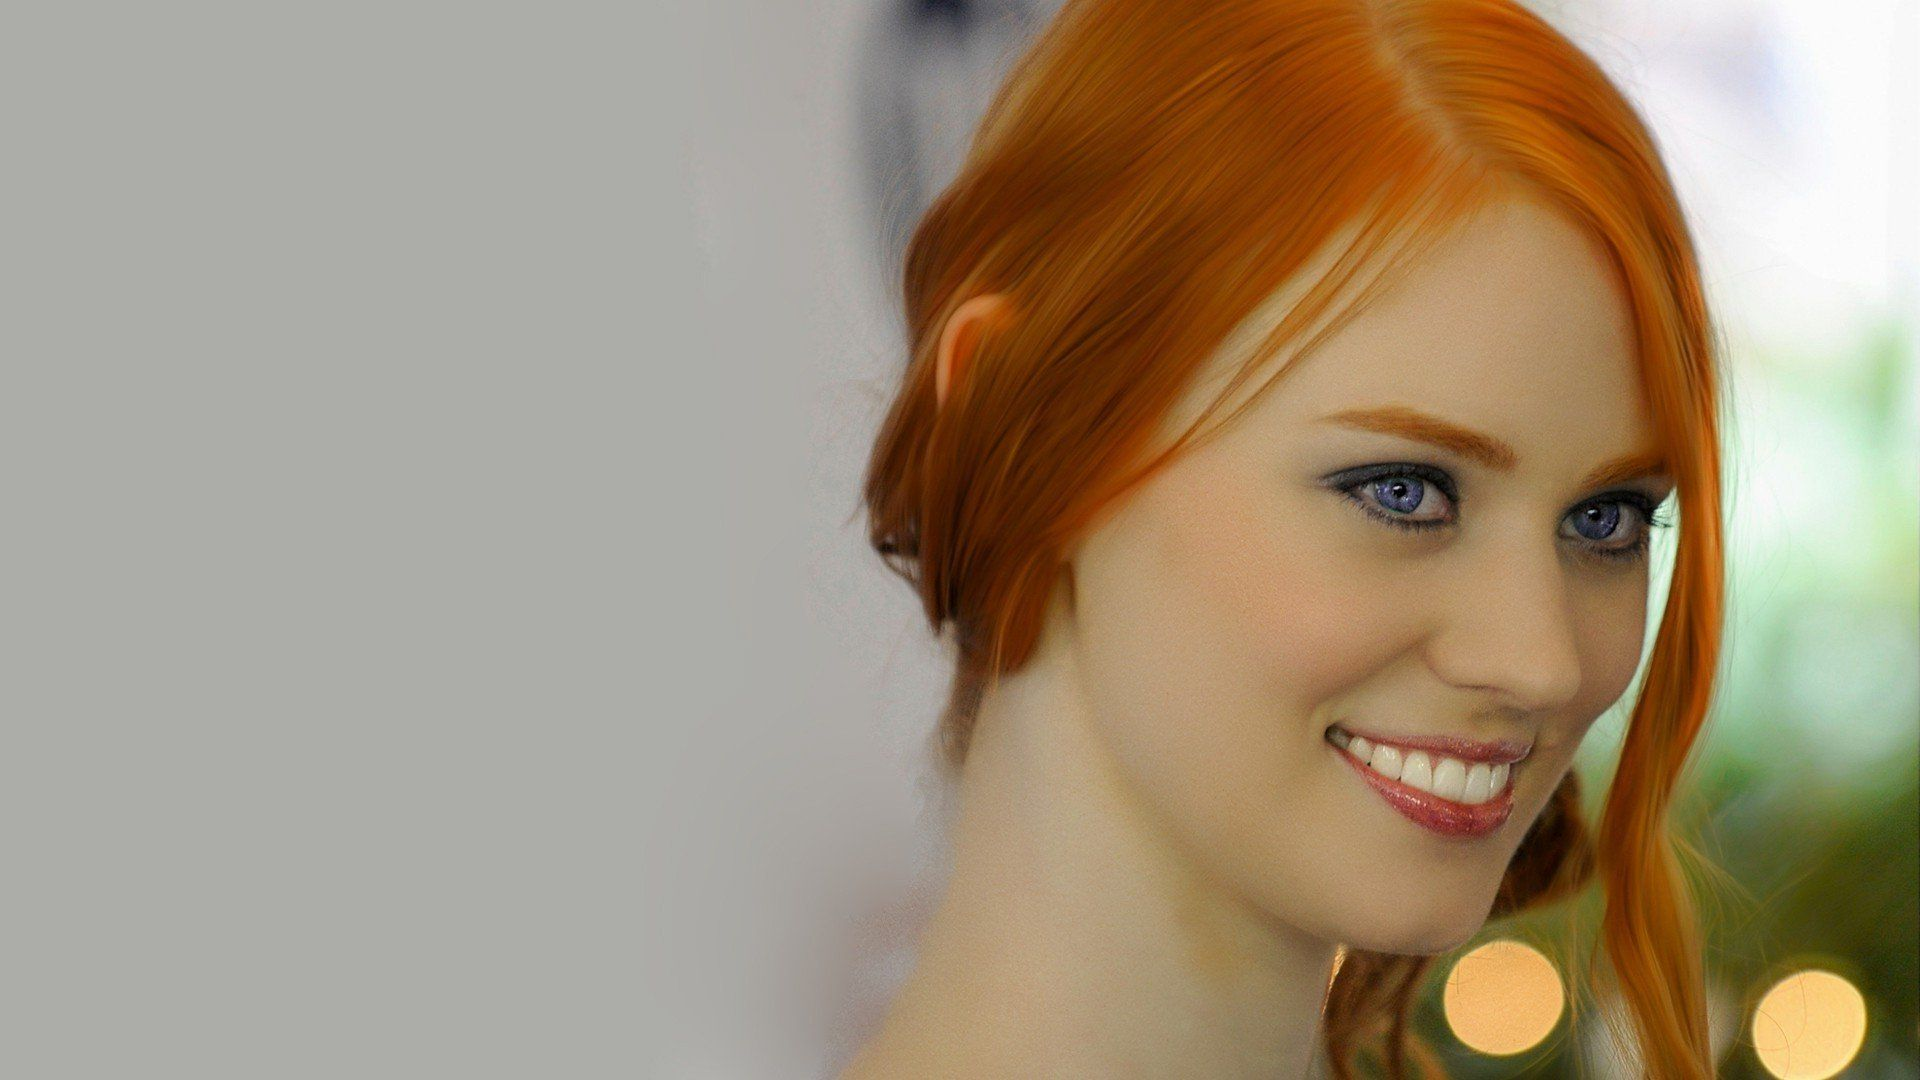 Deborah Ann Woll Smile Wallpaper 55183 1920x1080 Px Hdwallsource